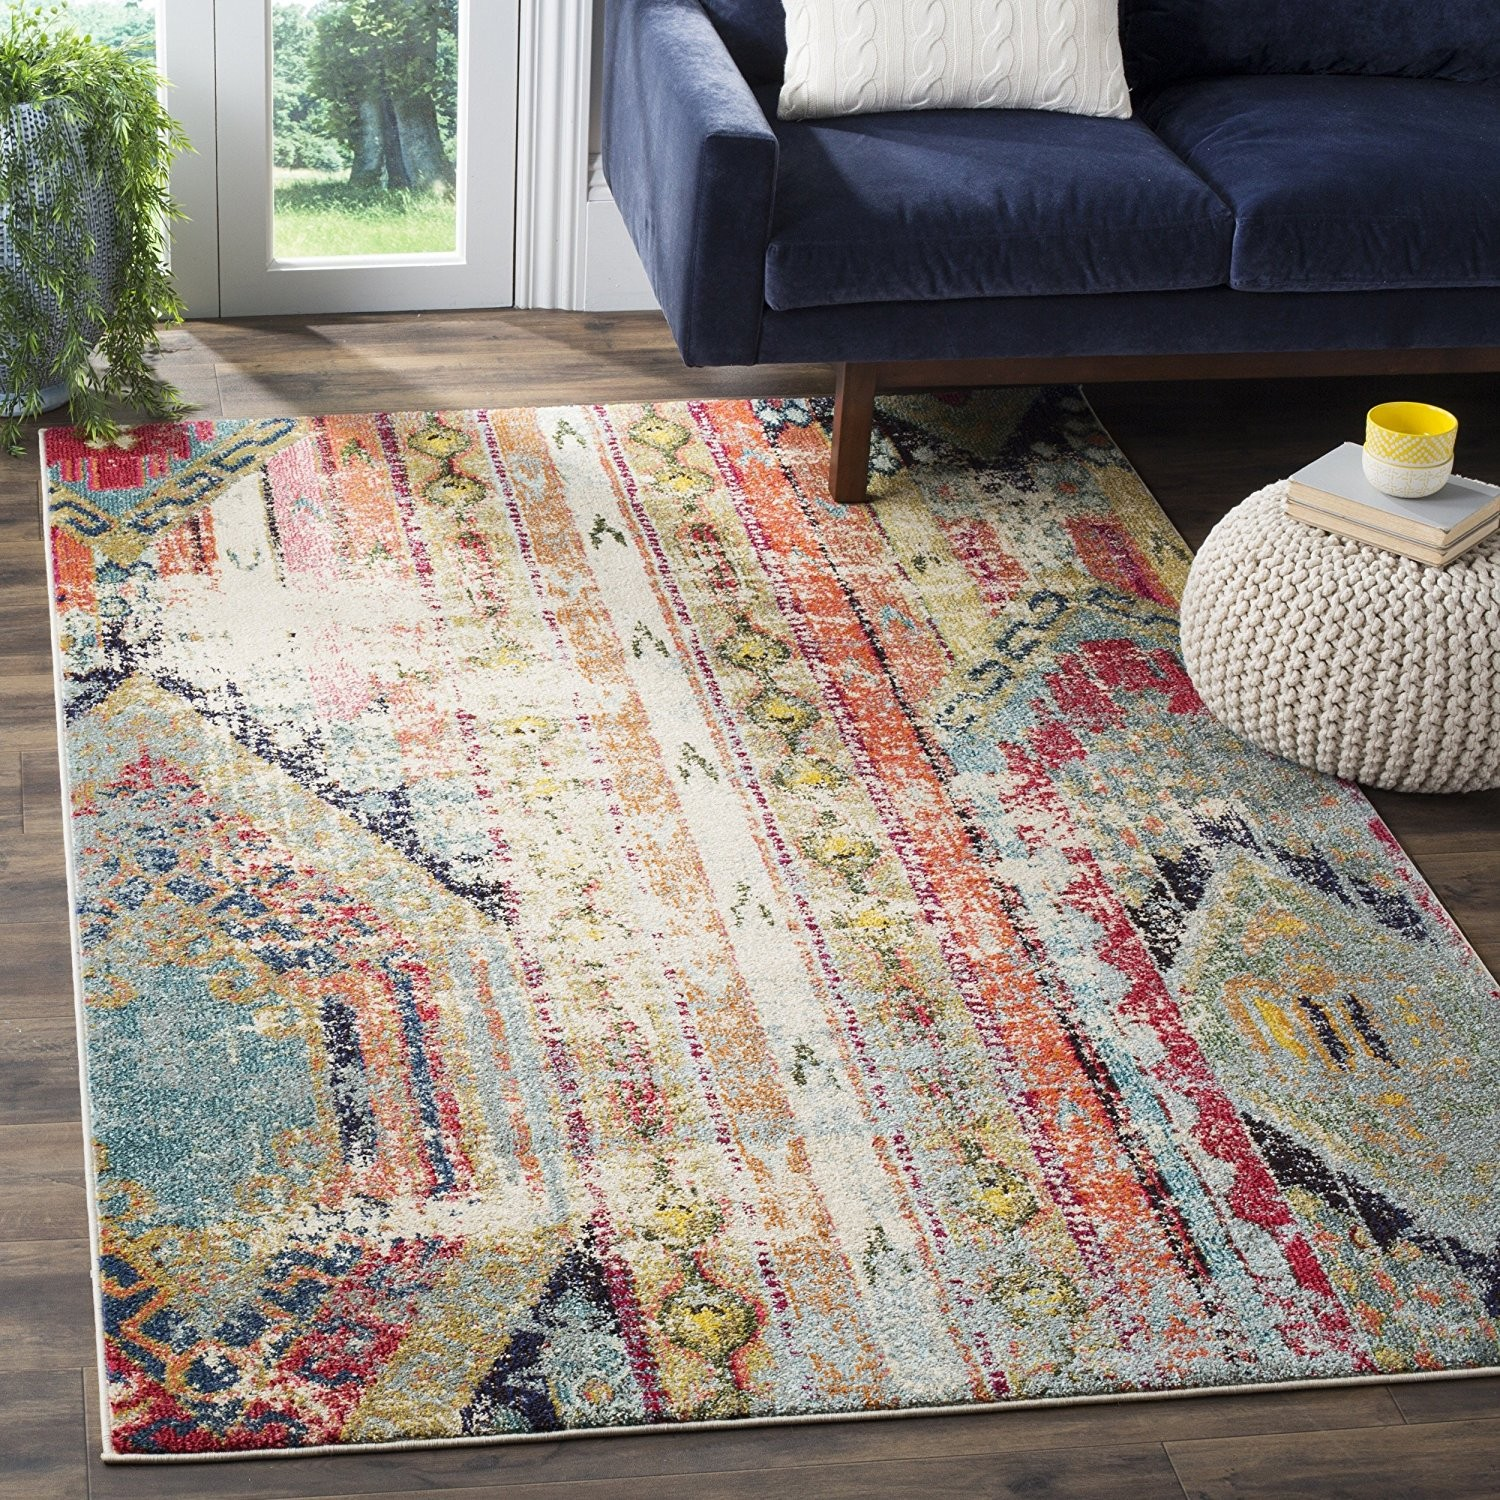 13 rugs to add life to your apartment